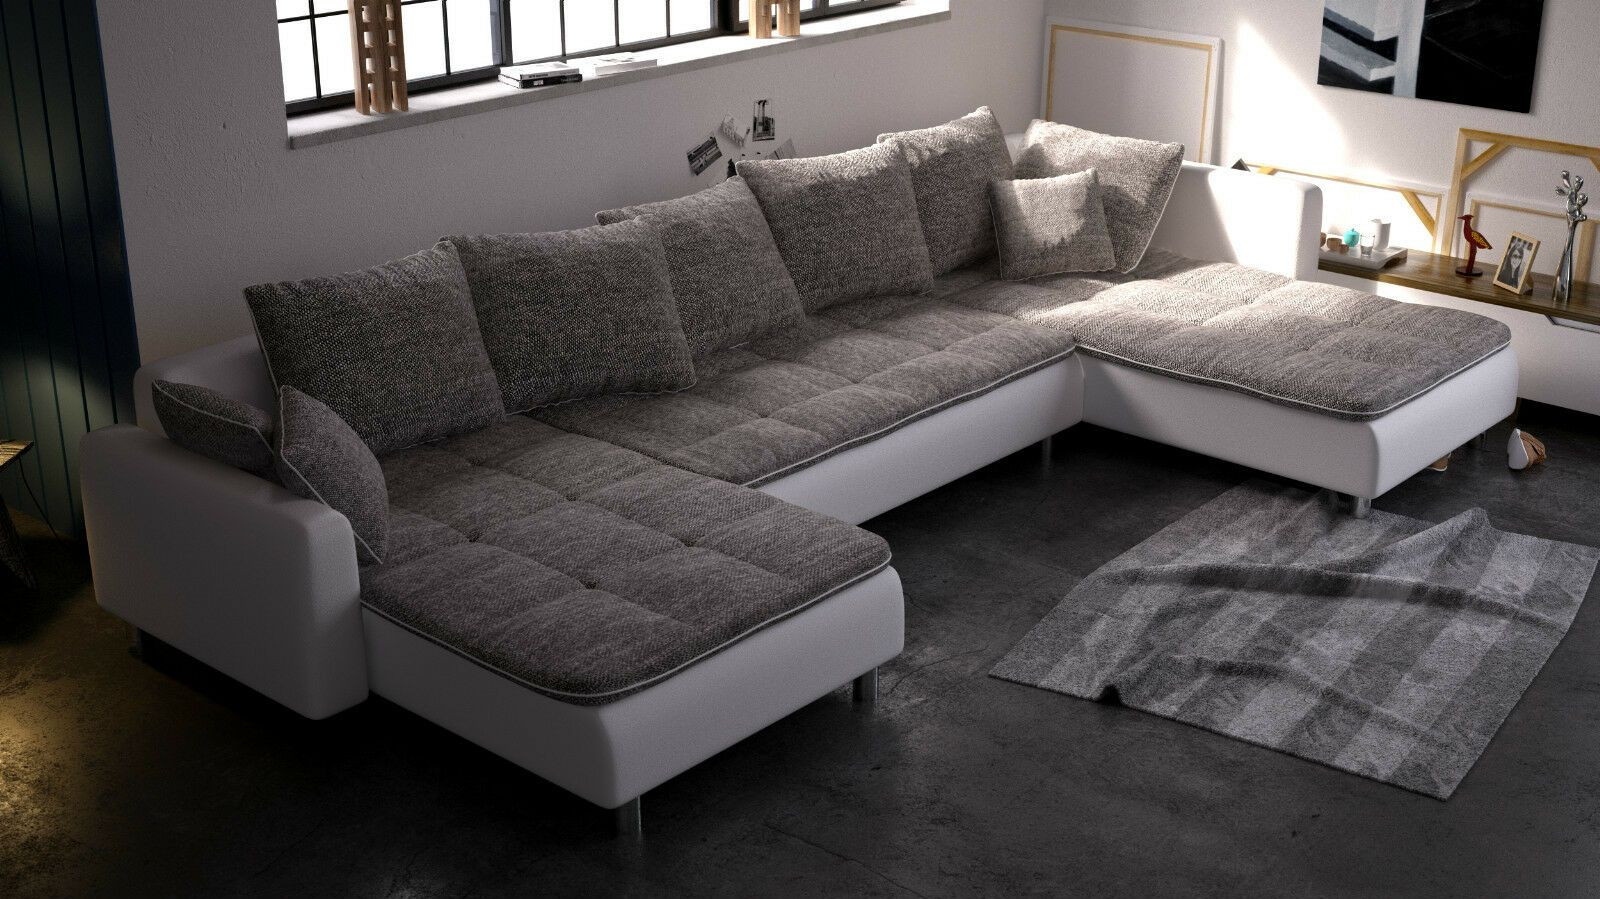 Grey Couch With Chaise And Recliner Variant Living Living Room Sofa Set Home Decor Styles Couch With Chaise